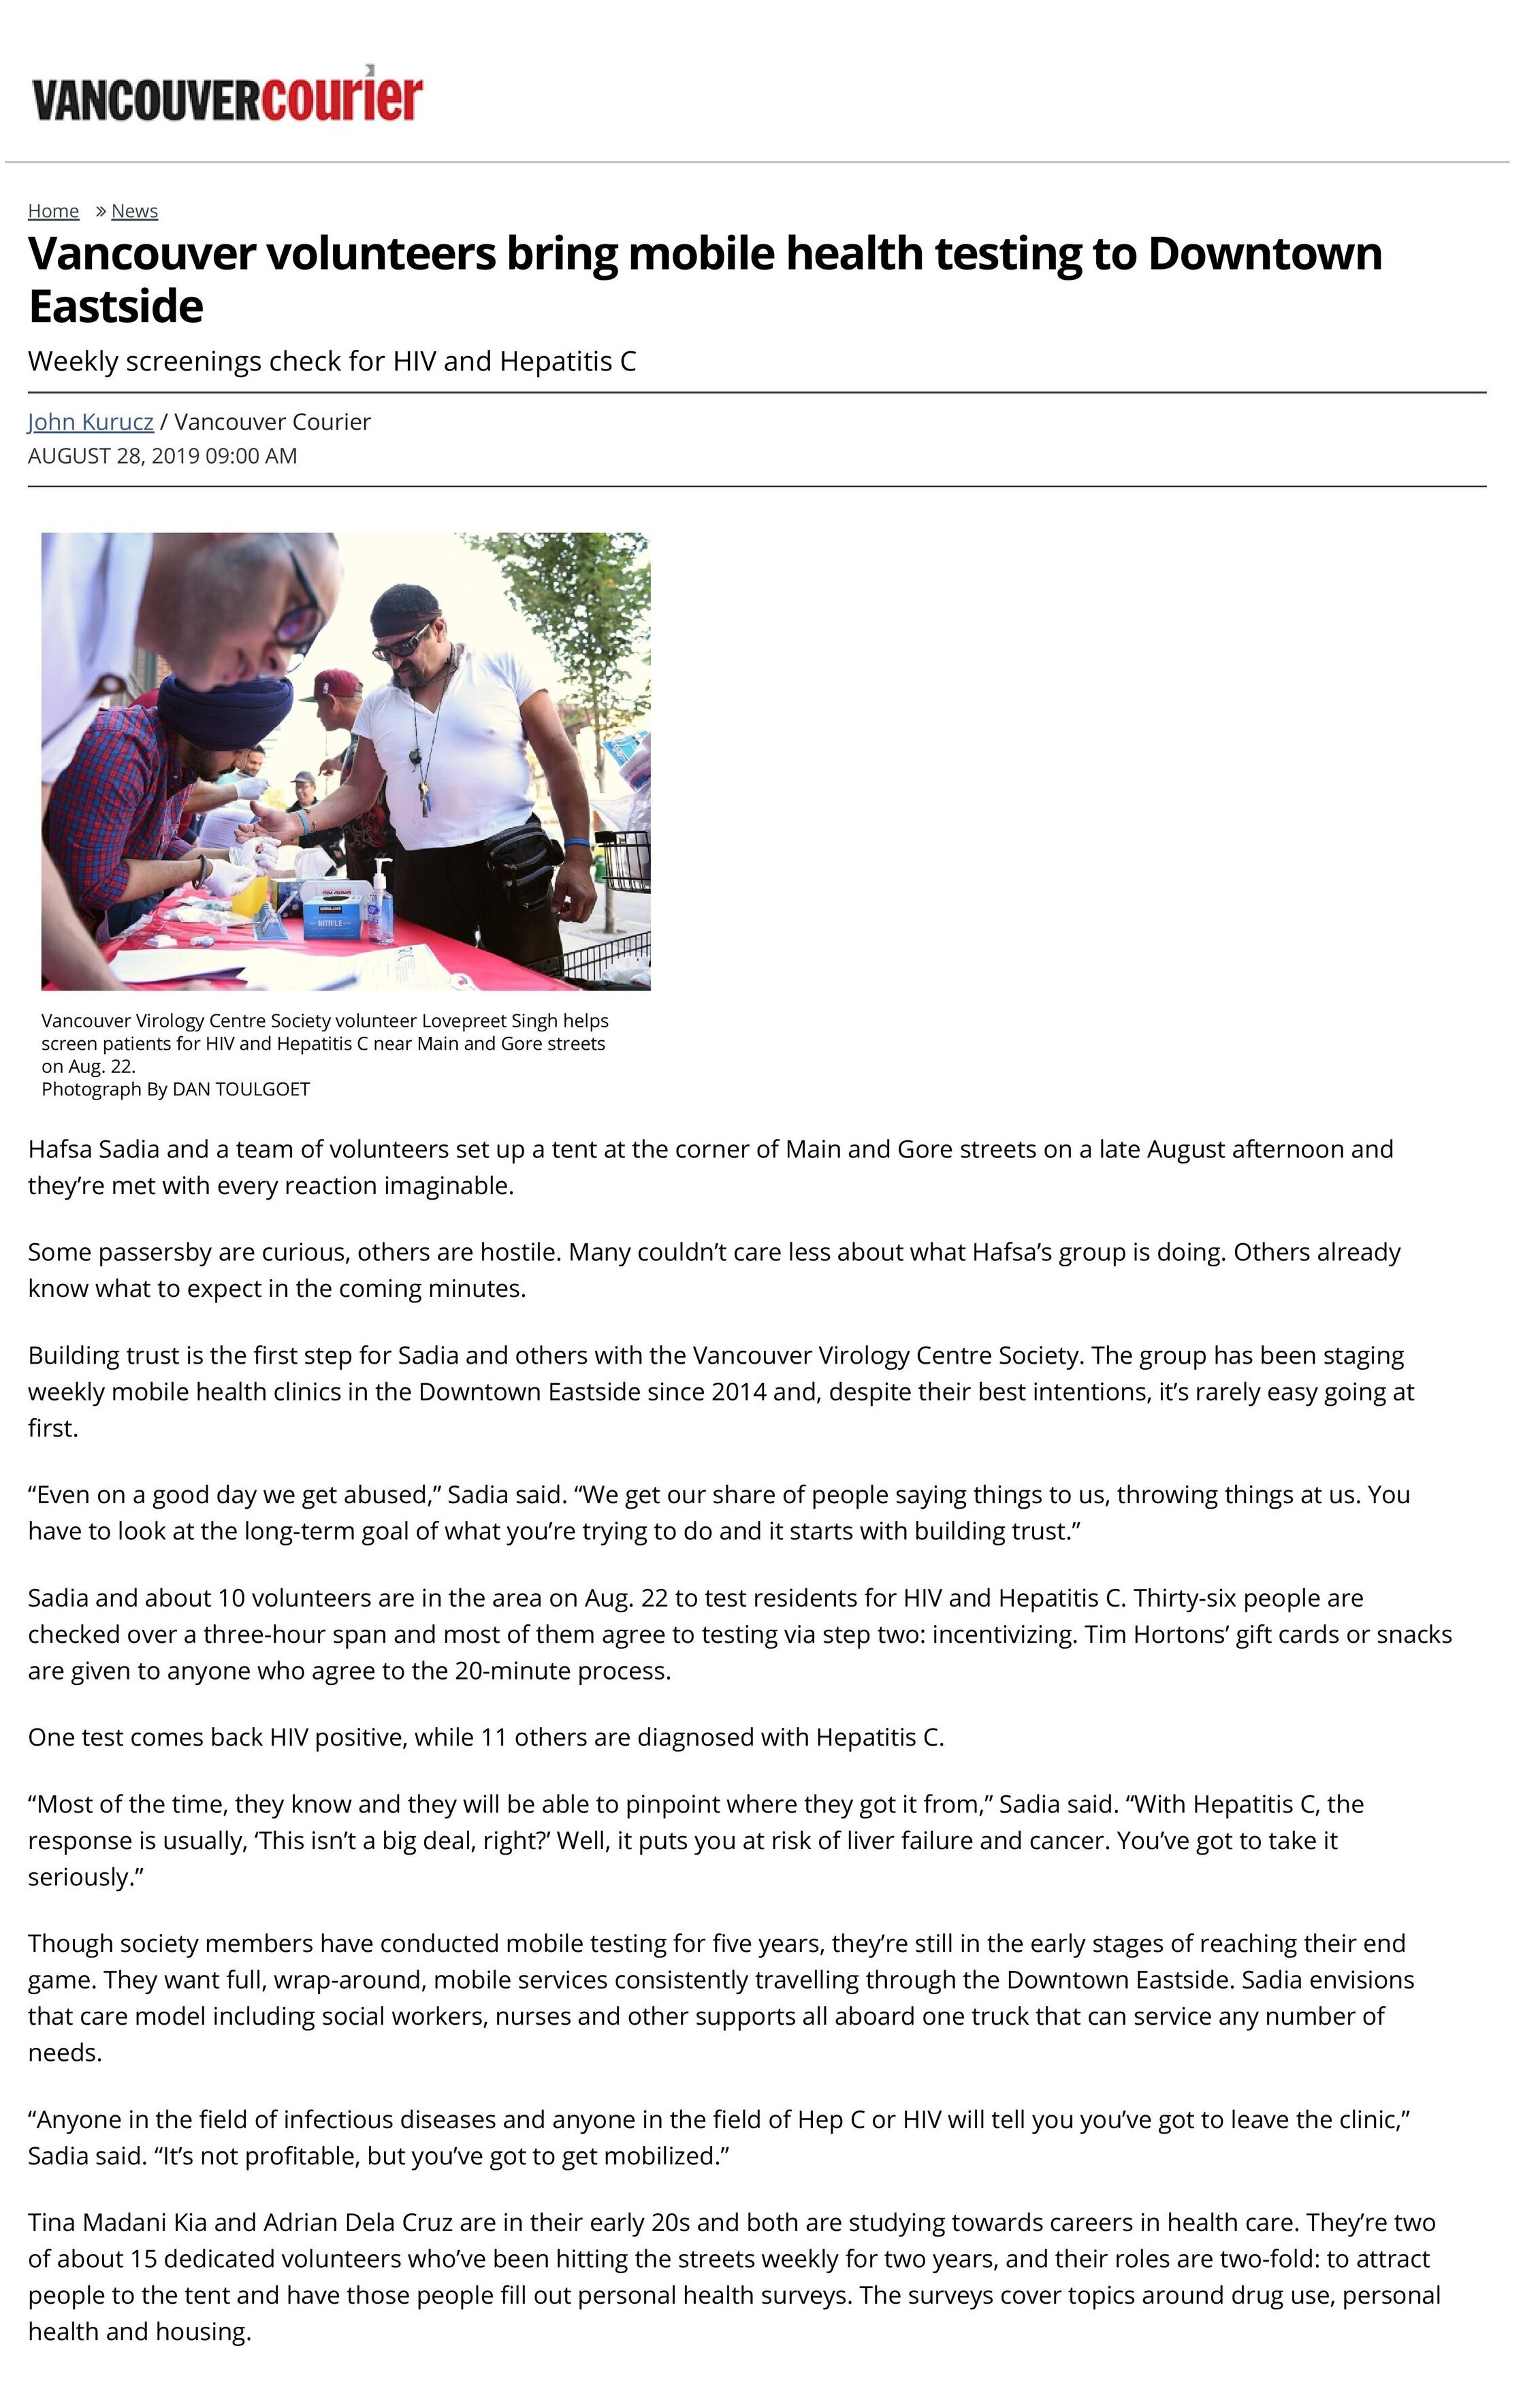 Vancouver volunteers bring mobile health testing to Downtown Eastside _ Vancouver Courier-page-001.jpg